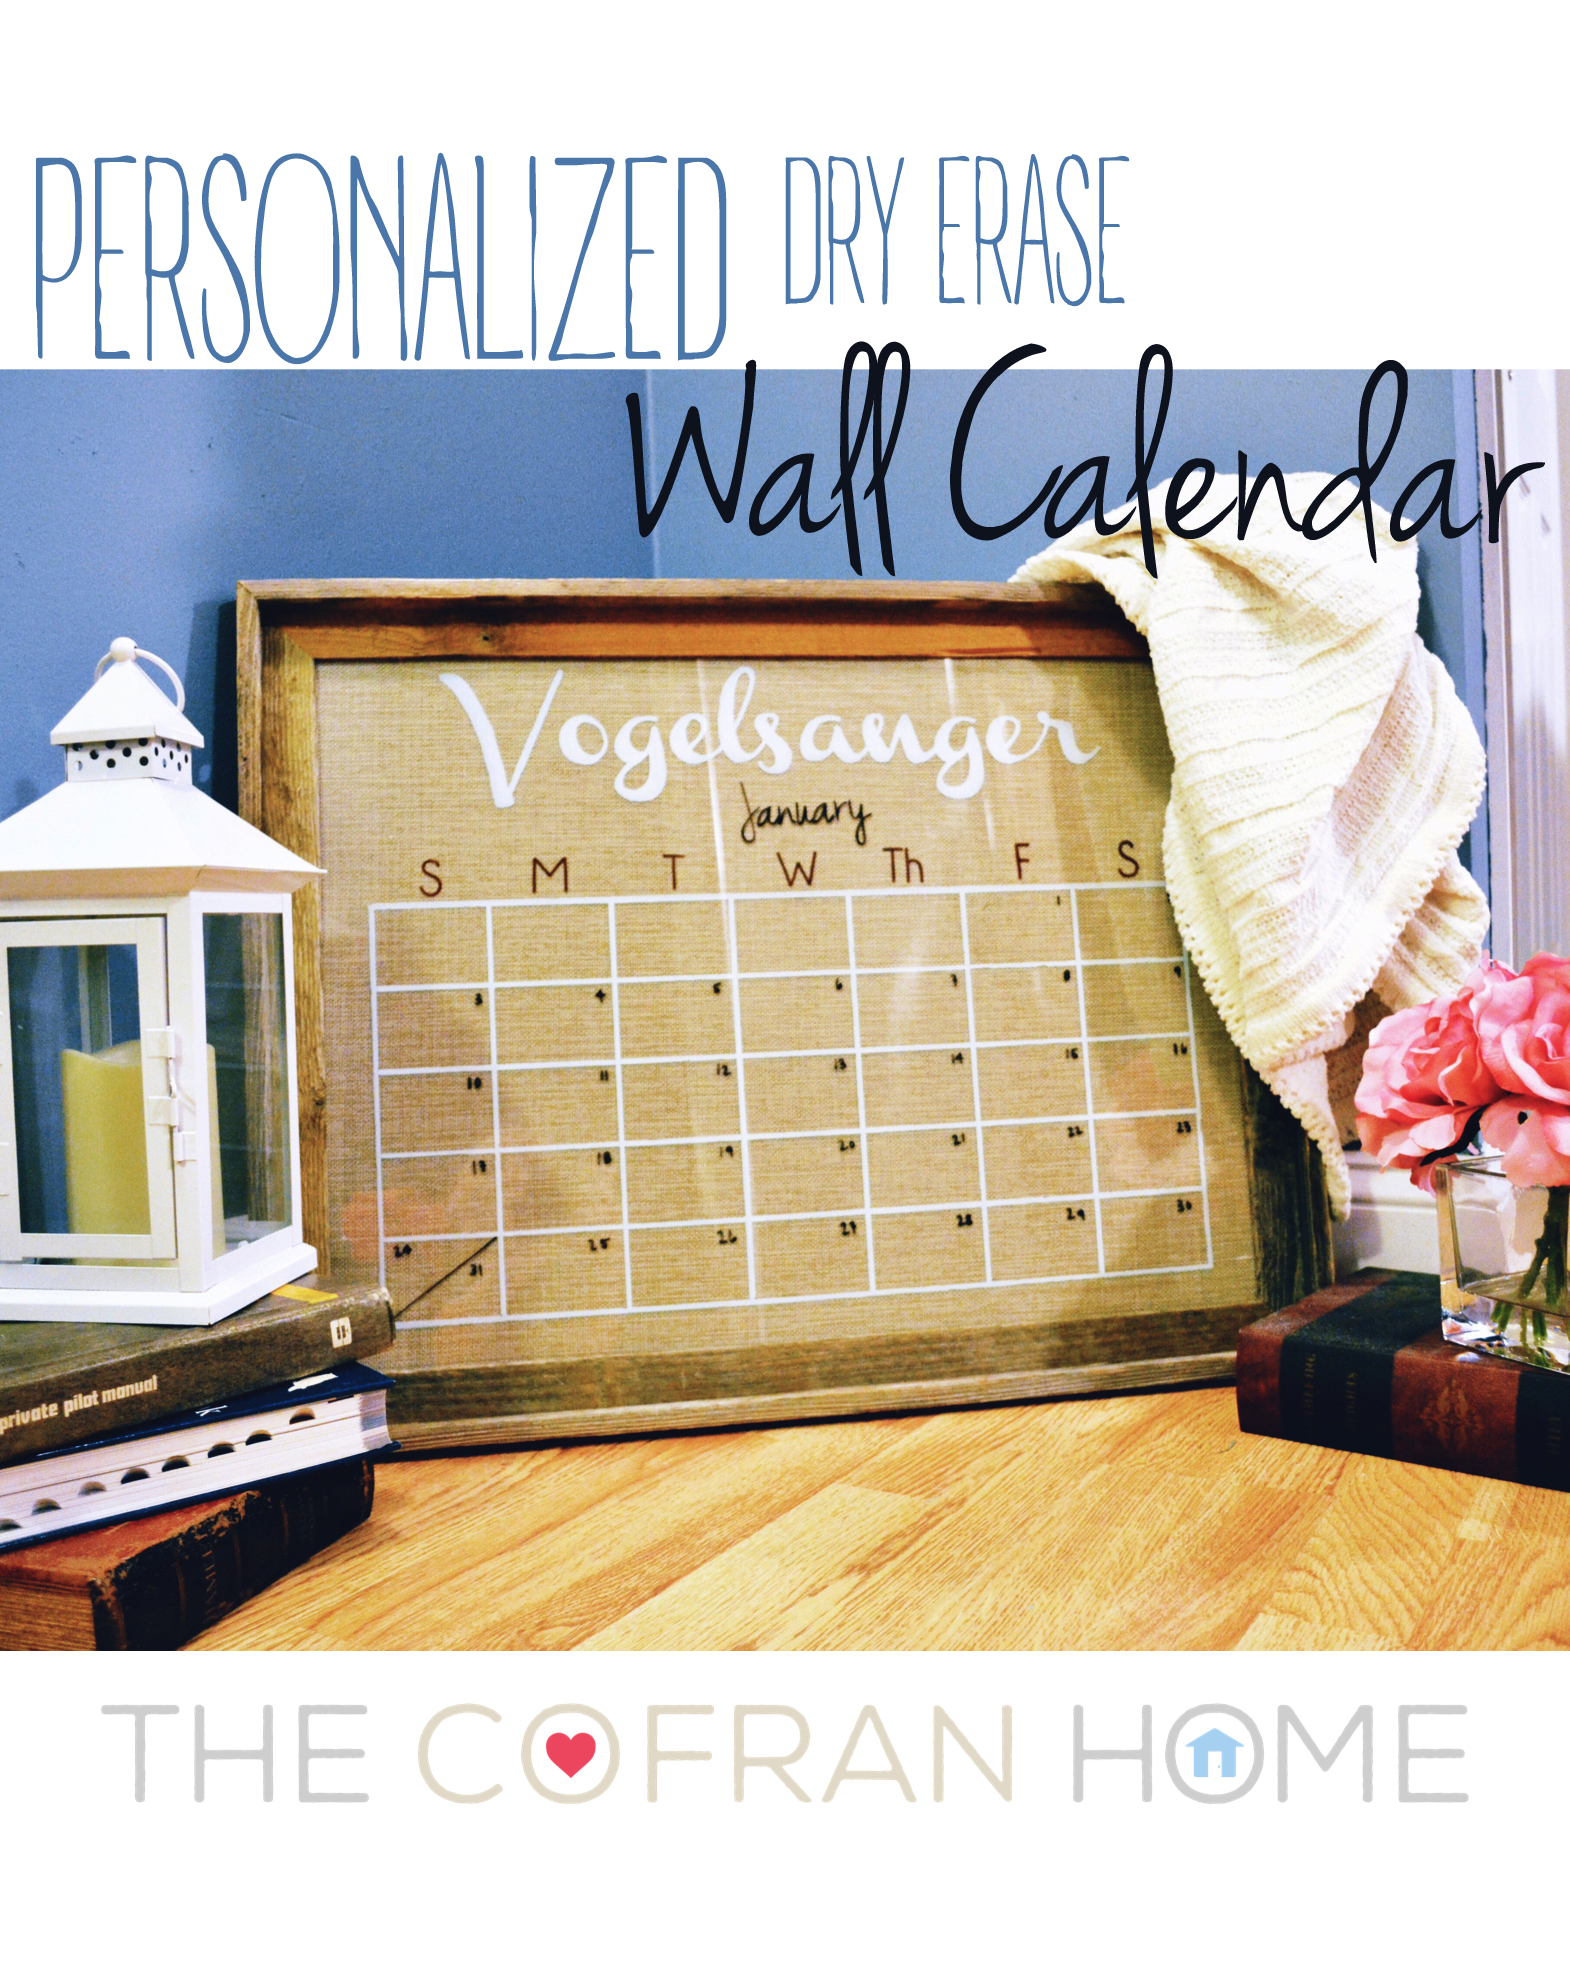 Customized wall calendars with photos